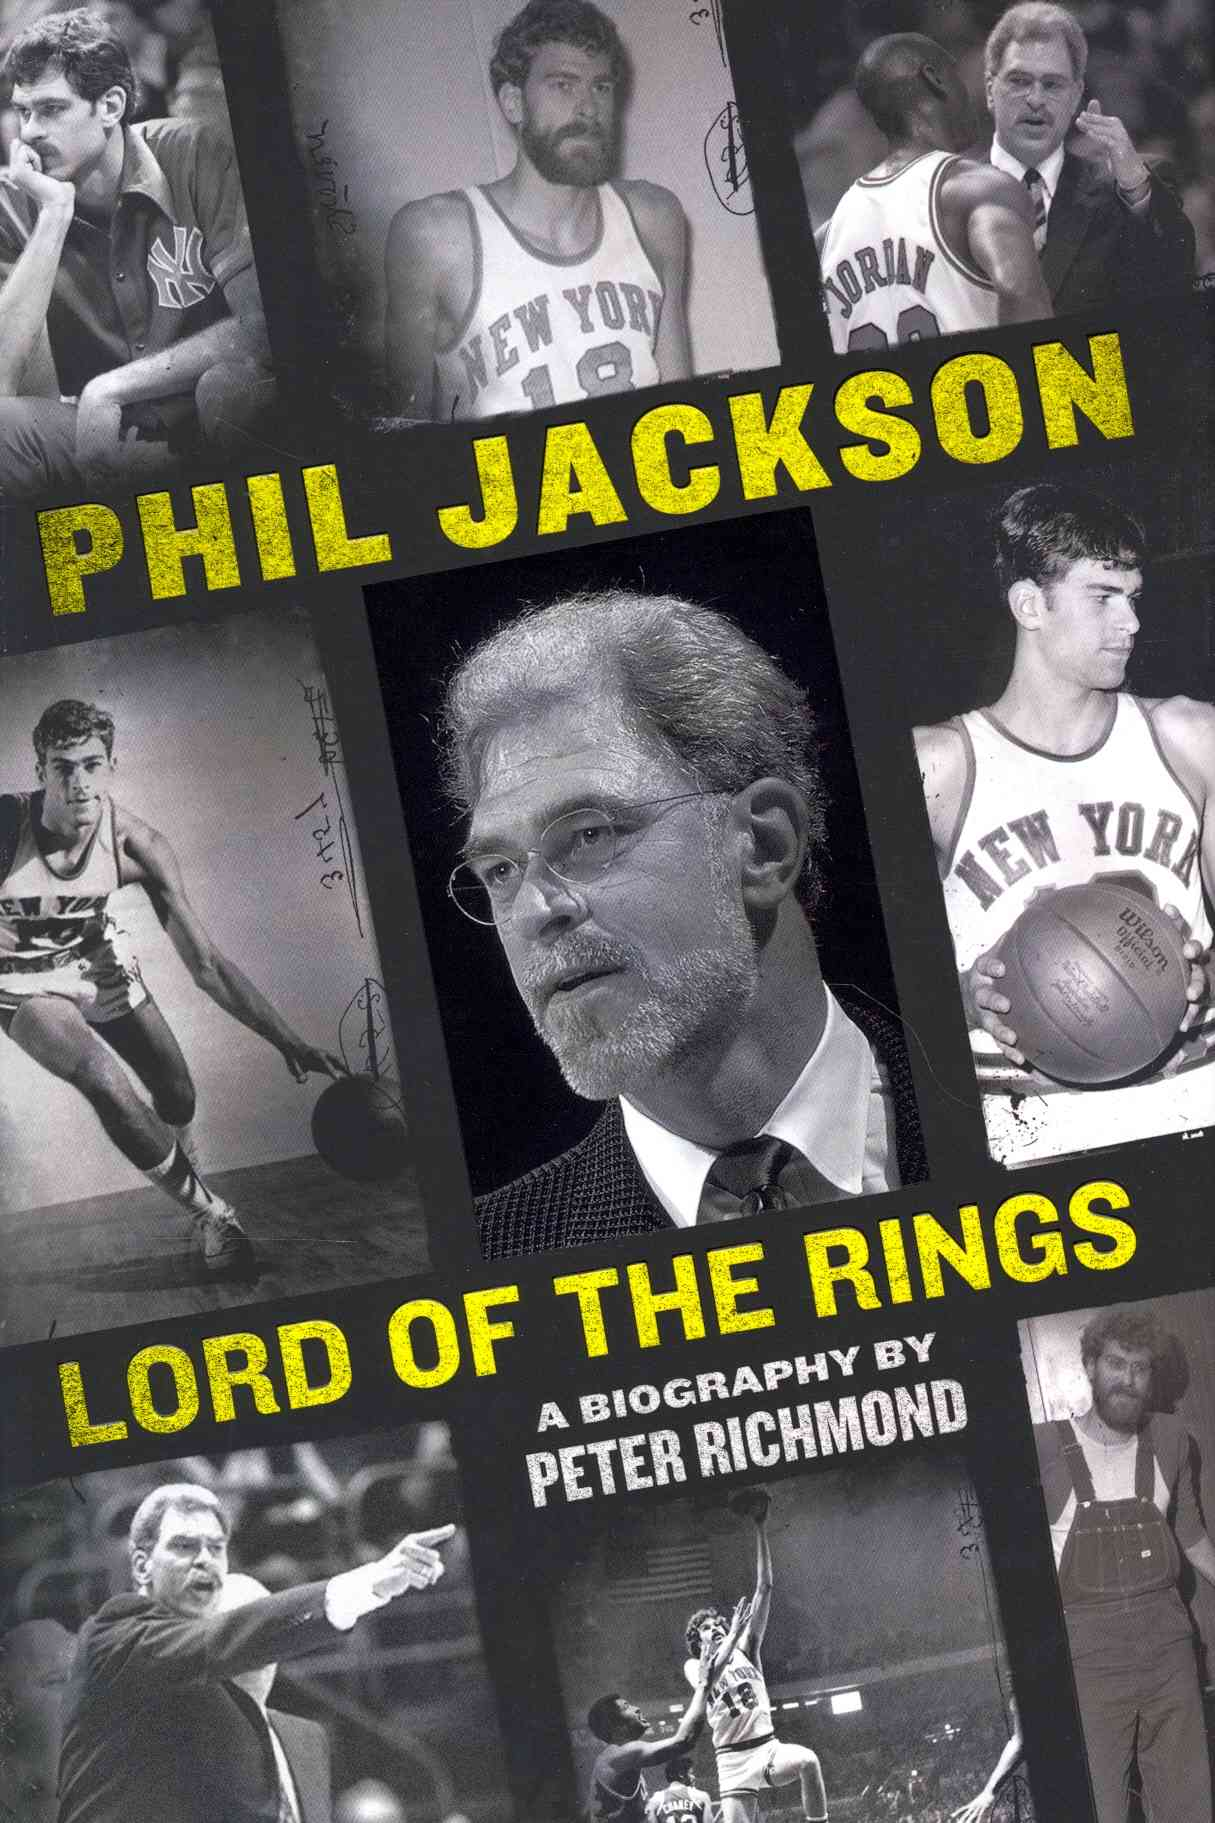 Phil Jackson: Lord of the Rings (Hardcover)